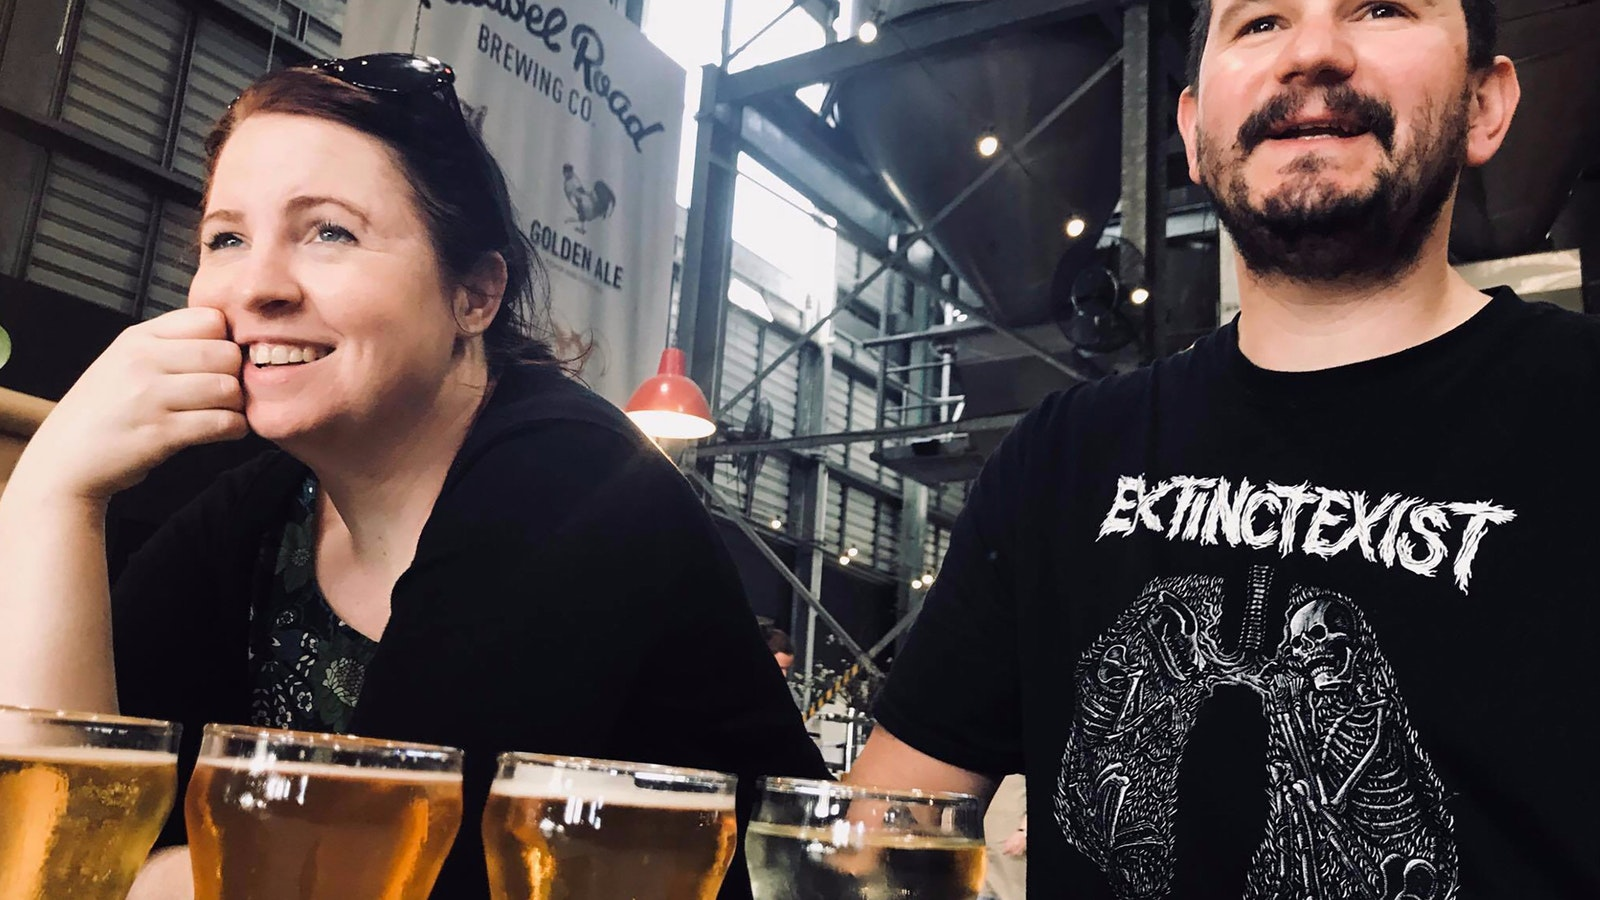 2 people laughing over a beer paddle in a brewery